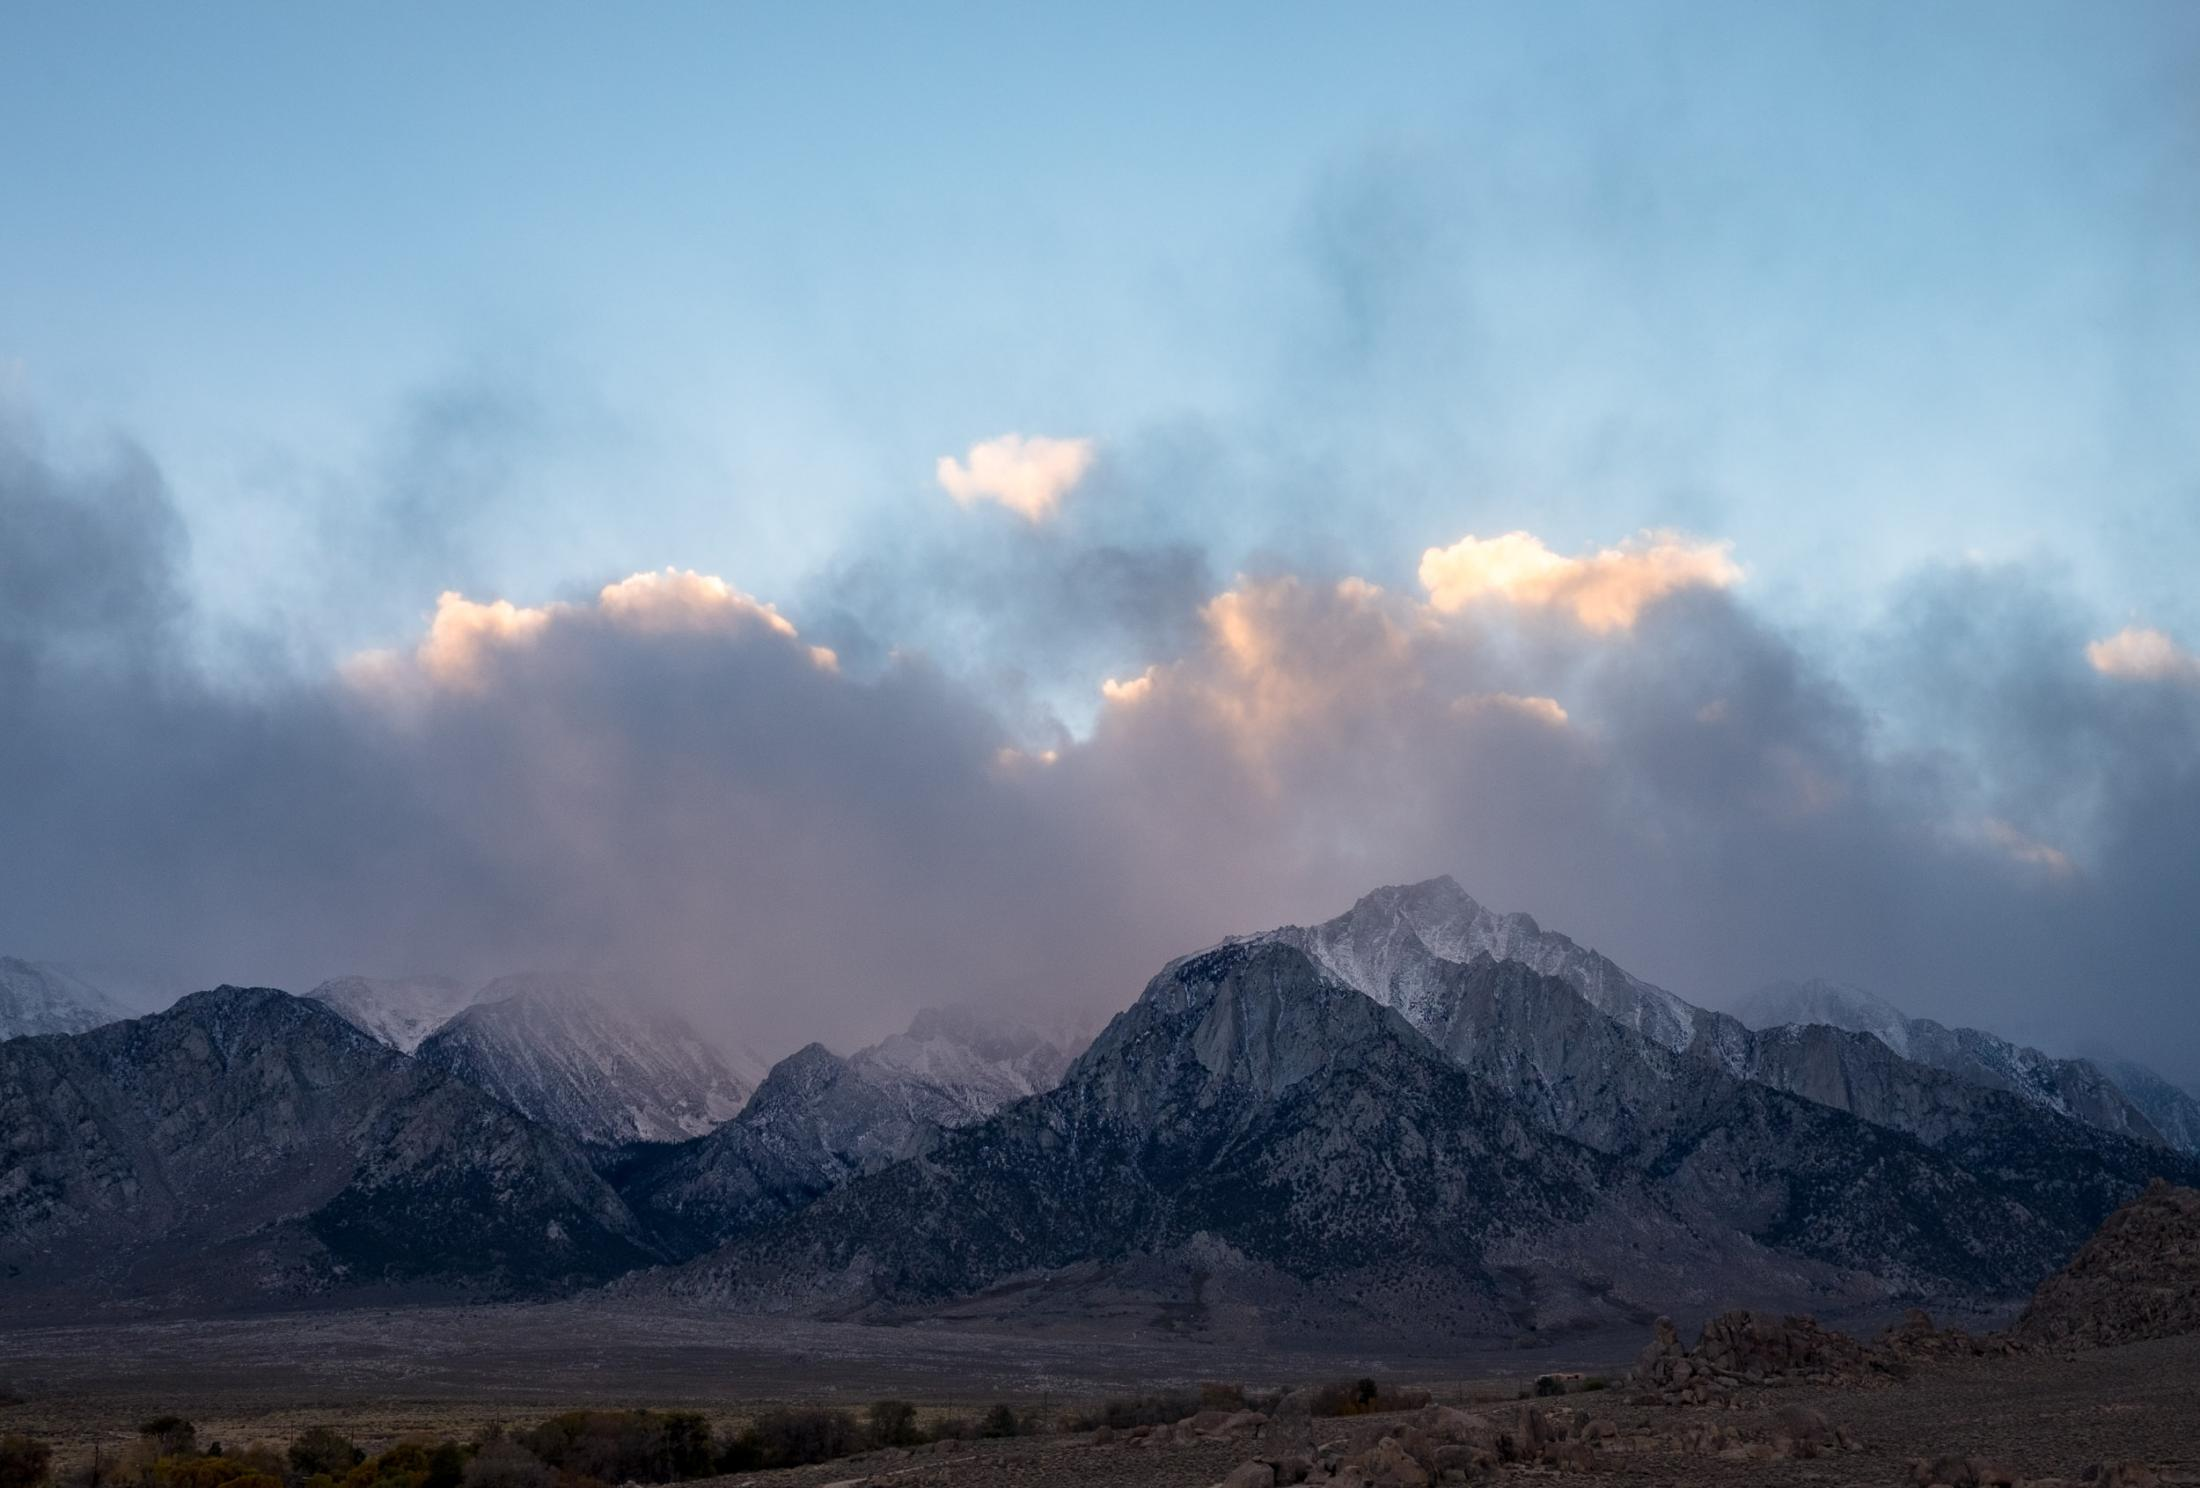 2. Mt, Whitney as a snow storm is crossing.